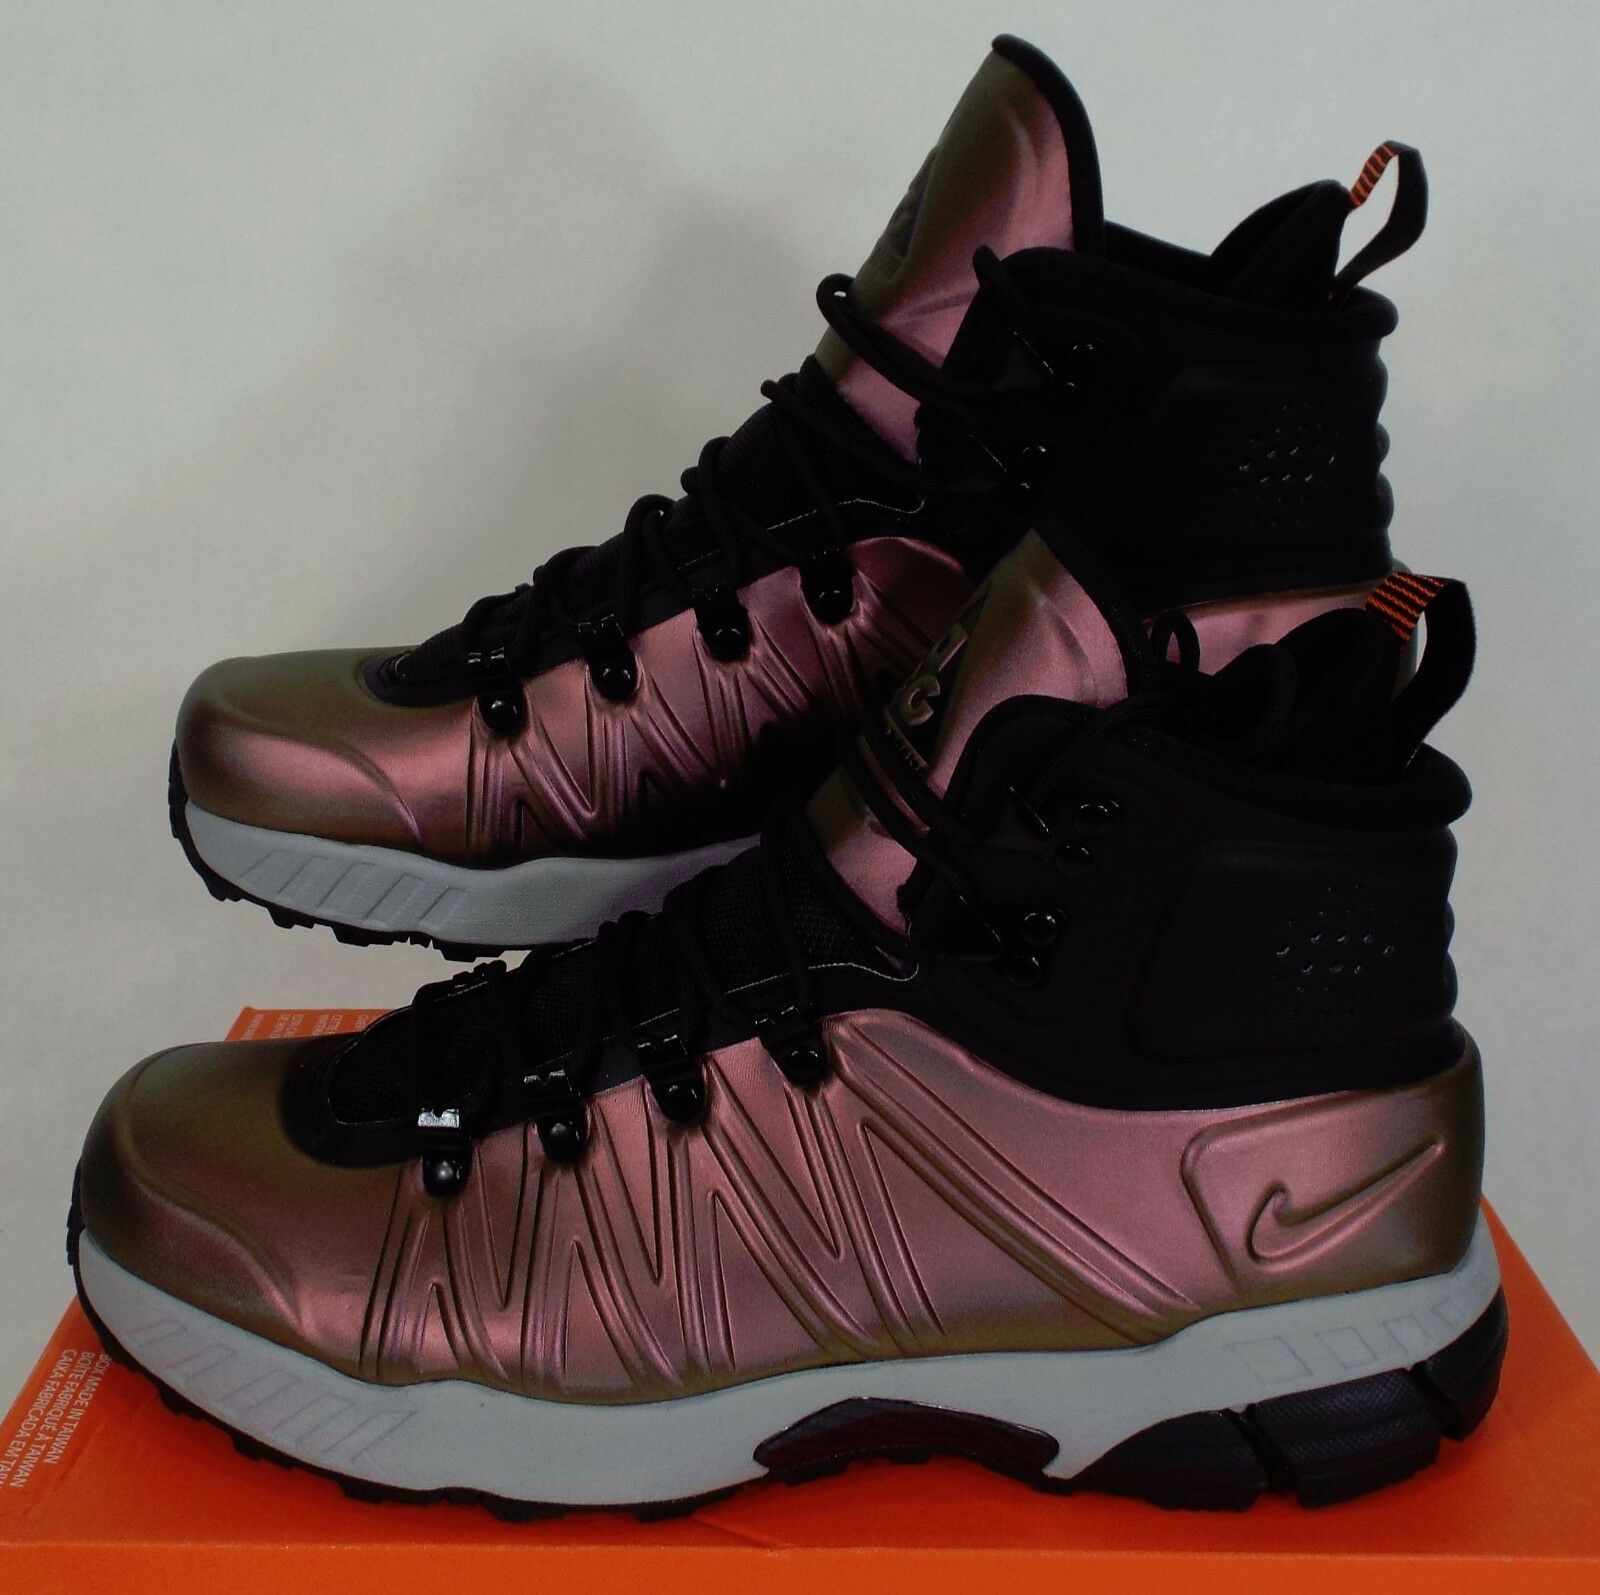 New RARE SAMPLE homme NIKE Zoom MW FoamPosite ACG Bottes chaussures 616215-060